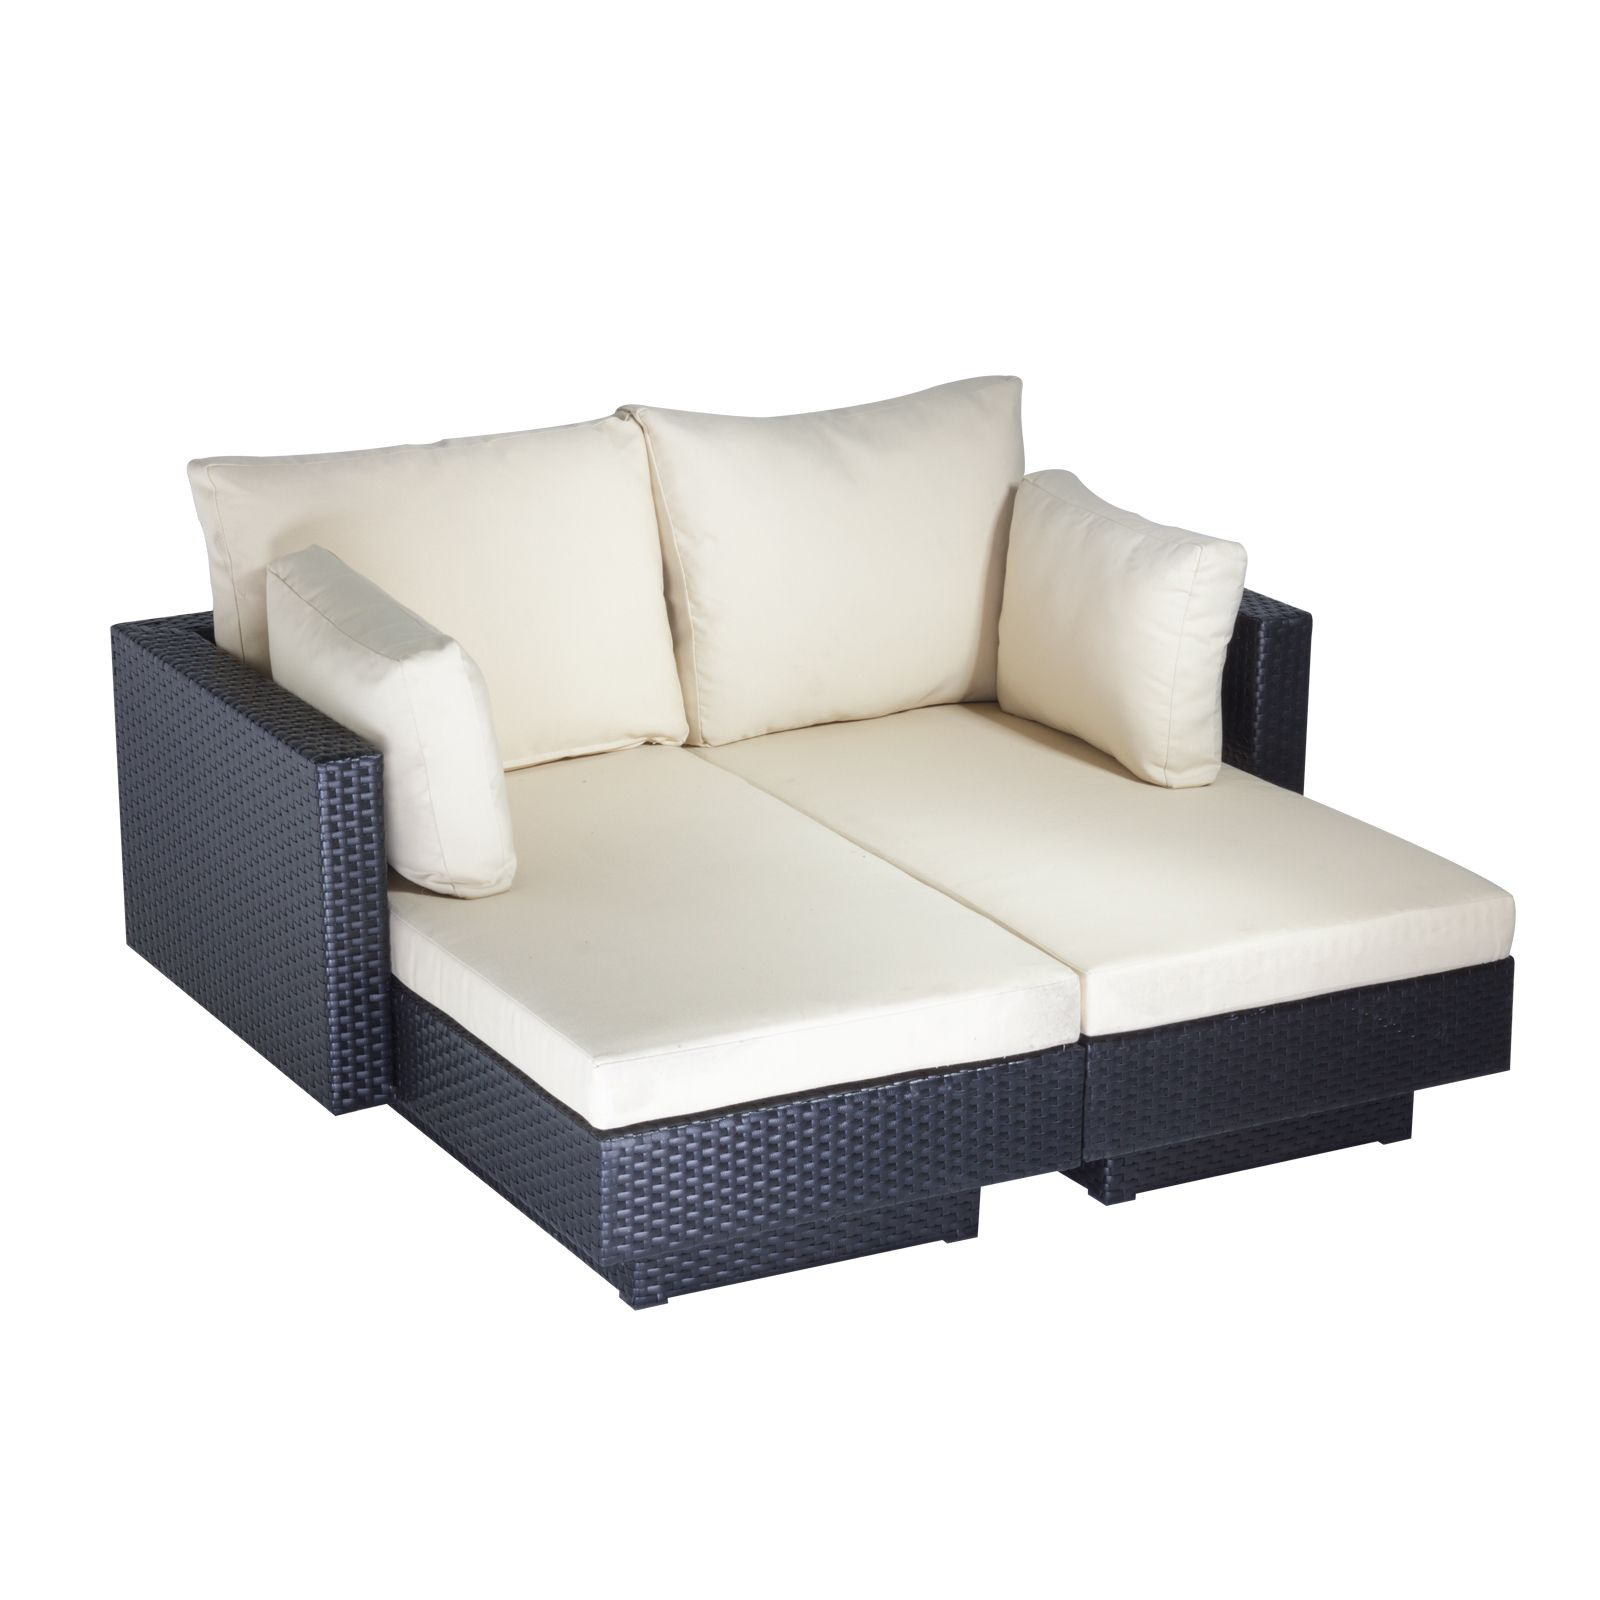 Cozy Bay Chicago 2 seater rattan furniture black super gar